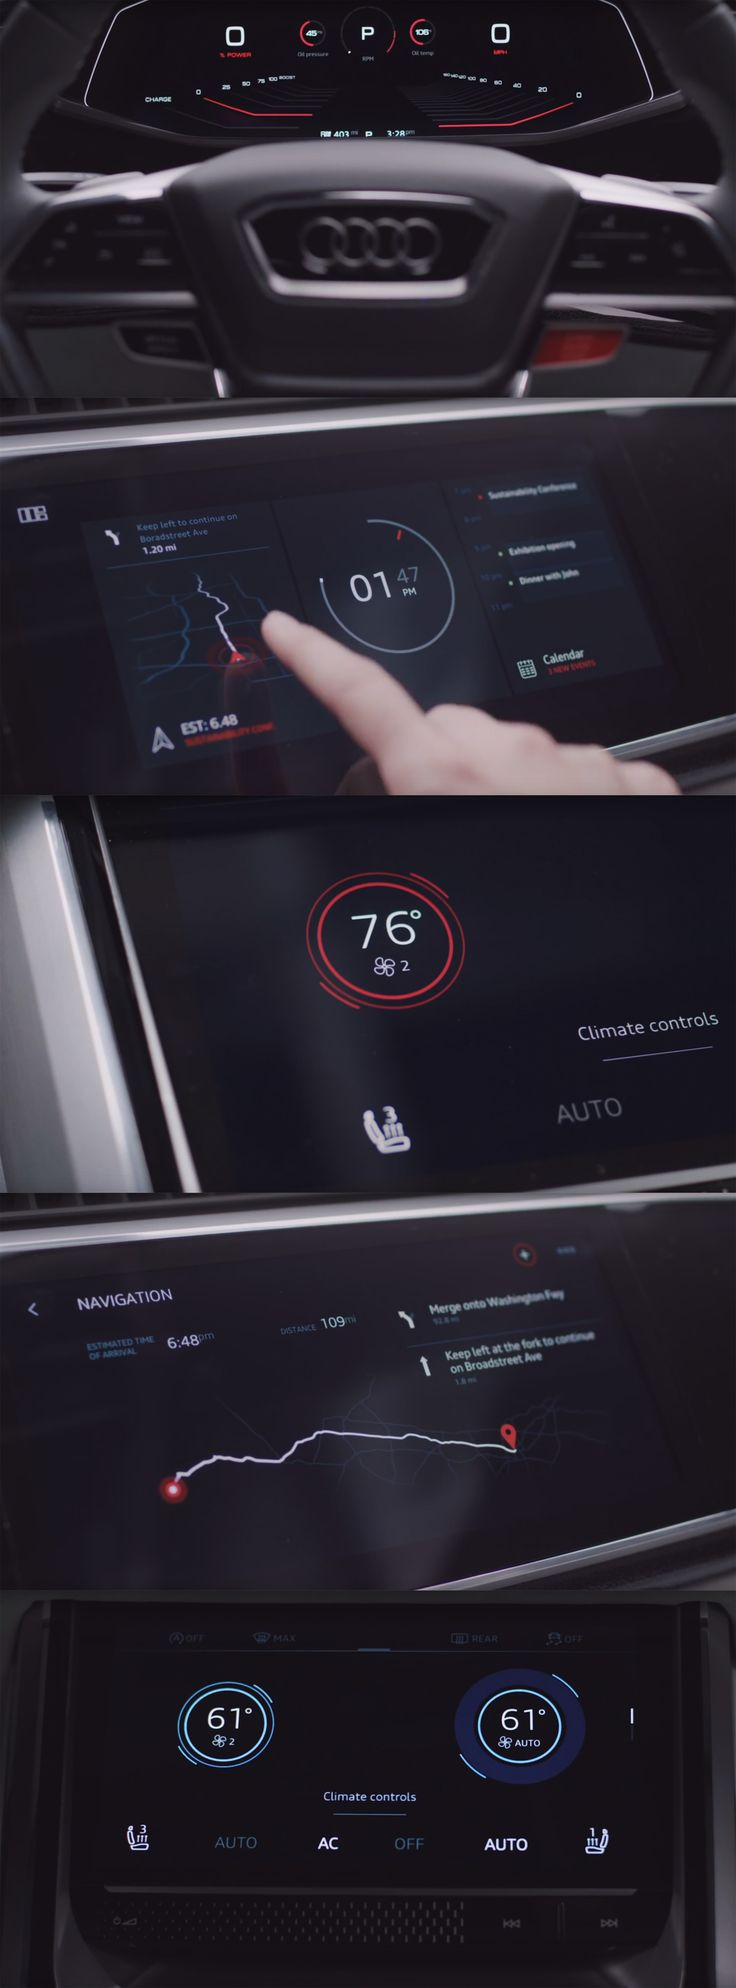 Audi Q8 Concept 2017 UI/UX https://www.youtube.com/watch?v=uTZ0ZABOIbA